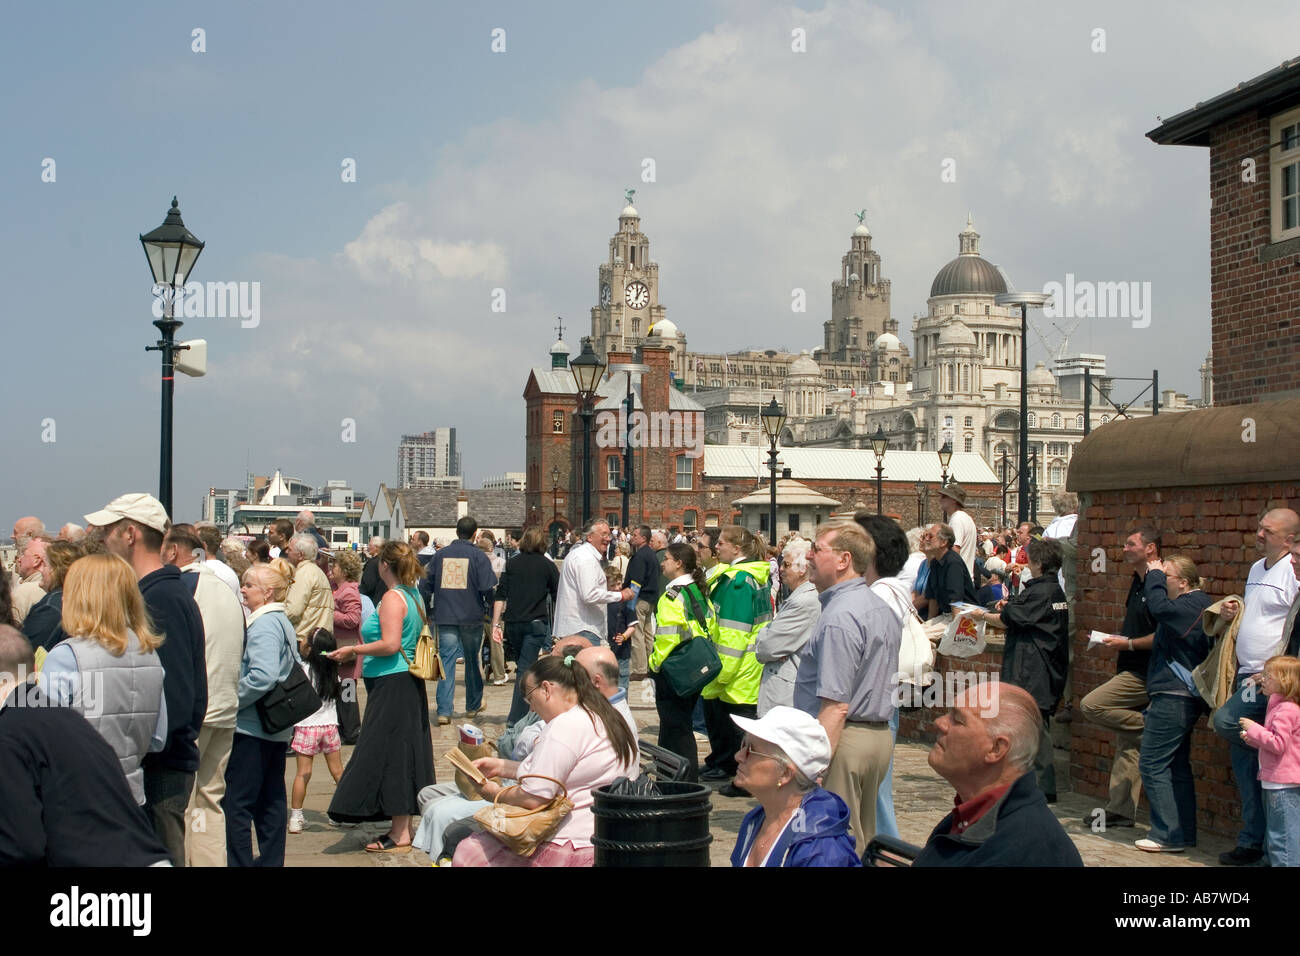 UK Merseyside Liverpool Mersey River Festival visitors on the waterfront - Stock Image